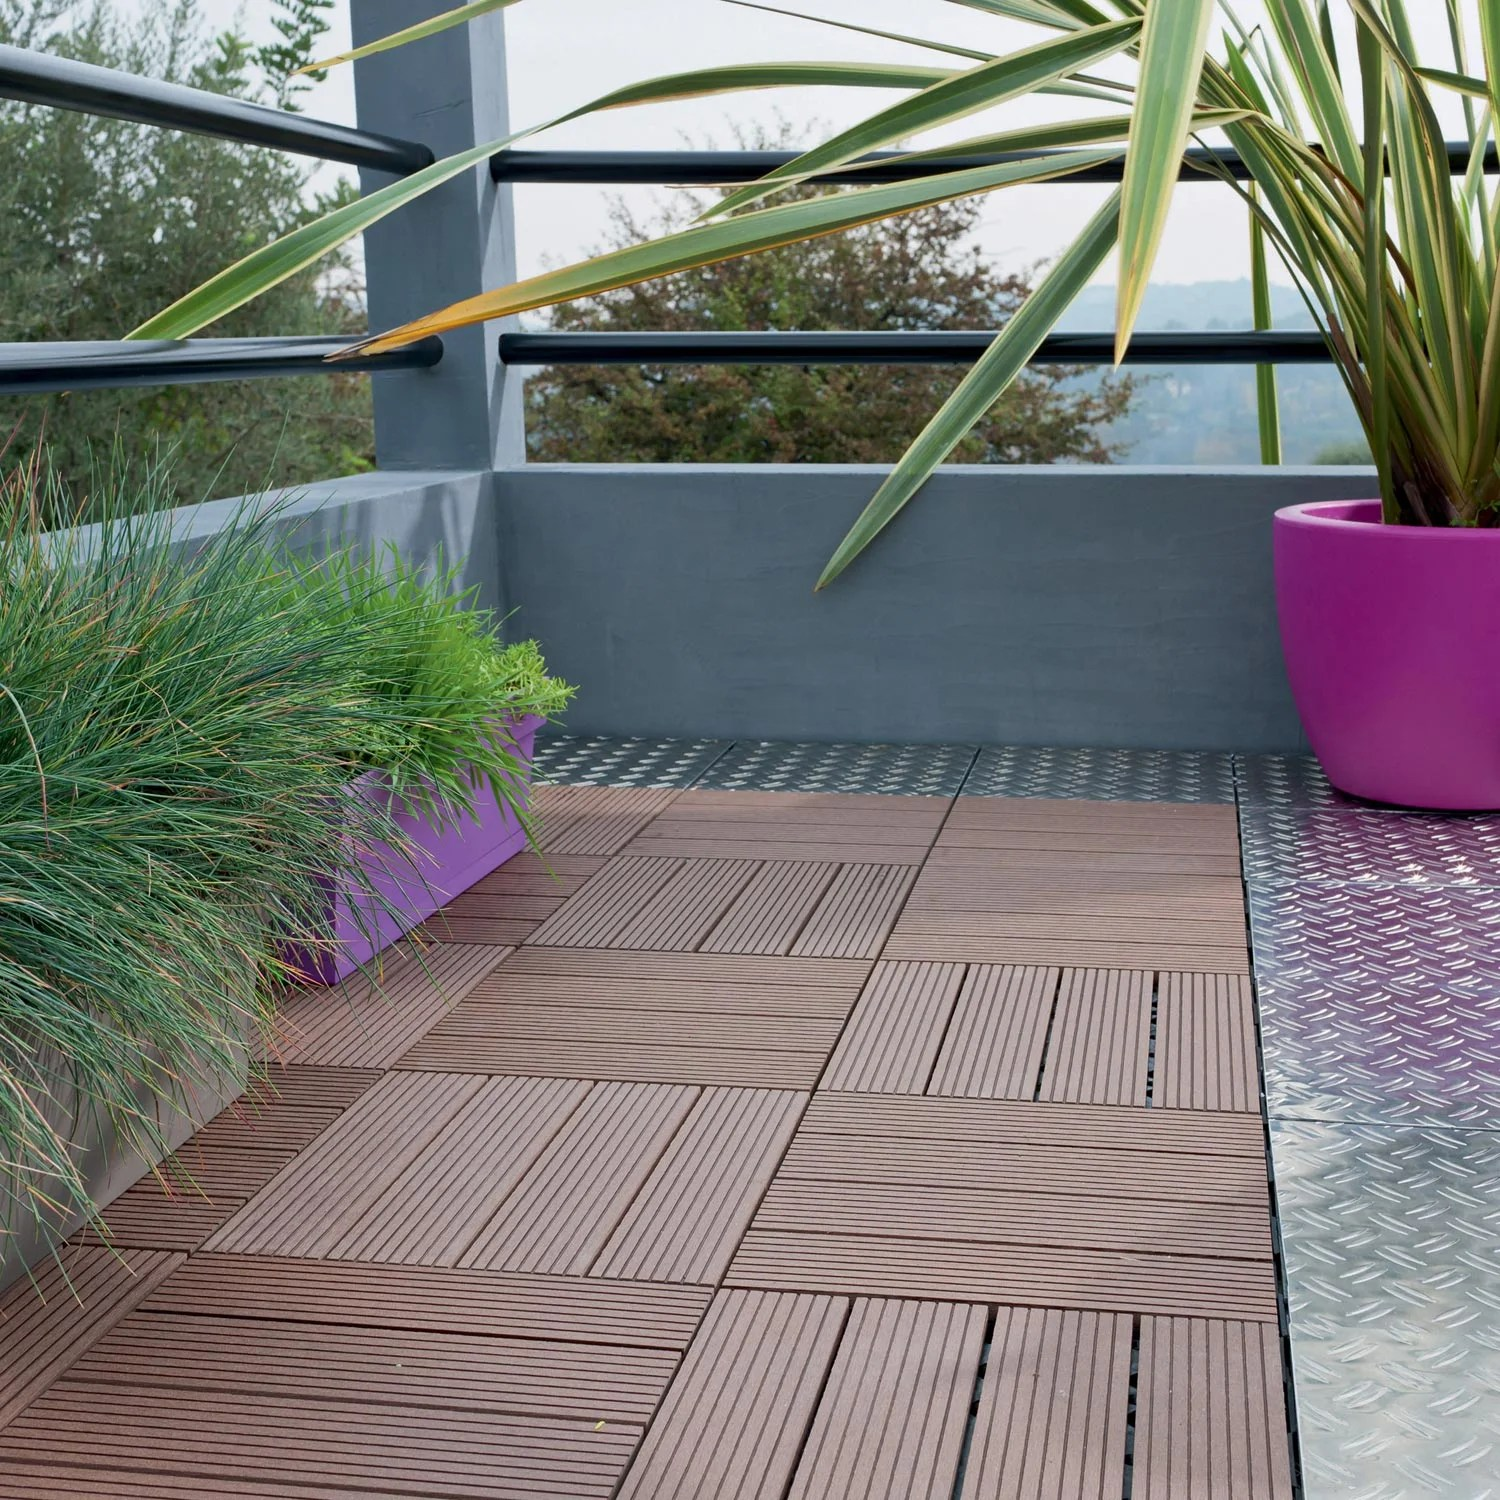 Terrasse Bois Clipsable Dalle Clipsable Composite Brun L 30 X L 30 Cm X Ep 23 Mm